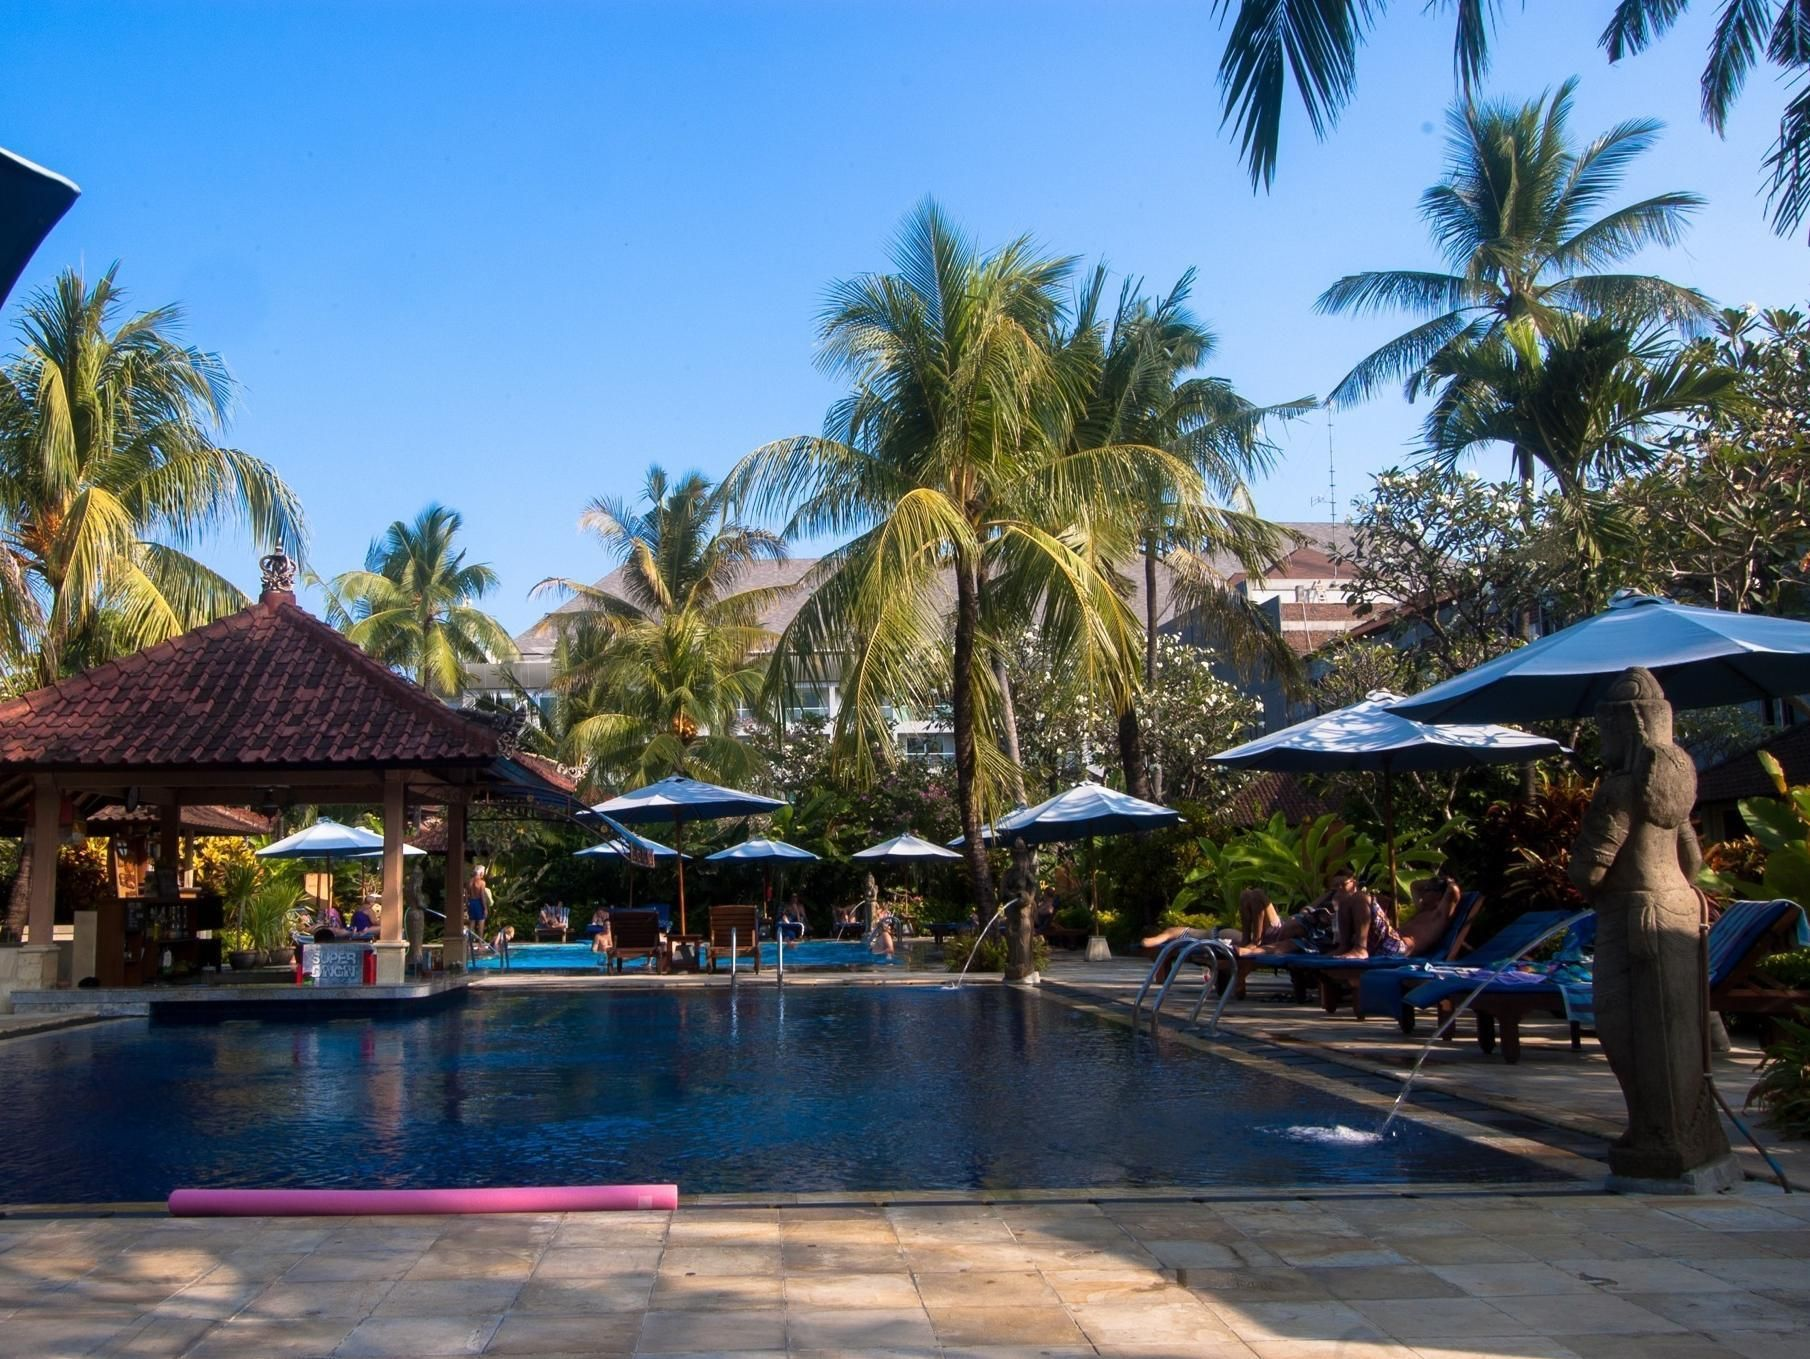 Bali kuta puri bungalow and spa indonesia asia the 3 star for Bali indonesia hotels 5 star